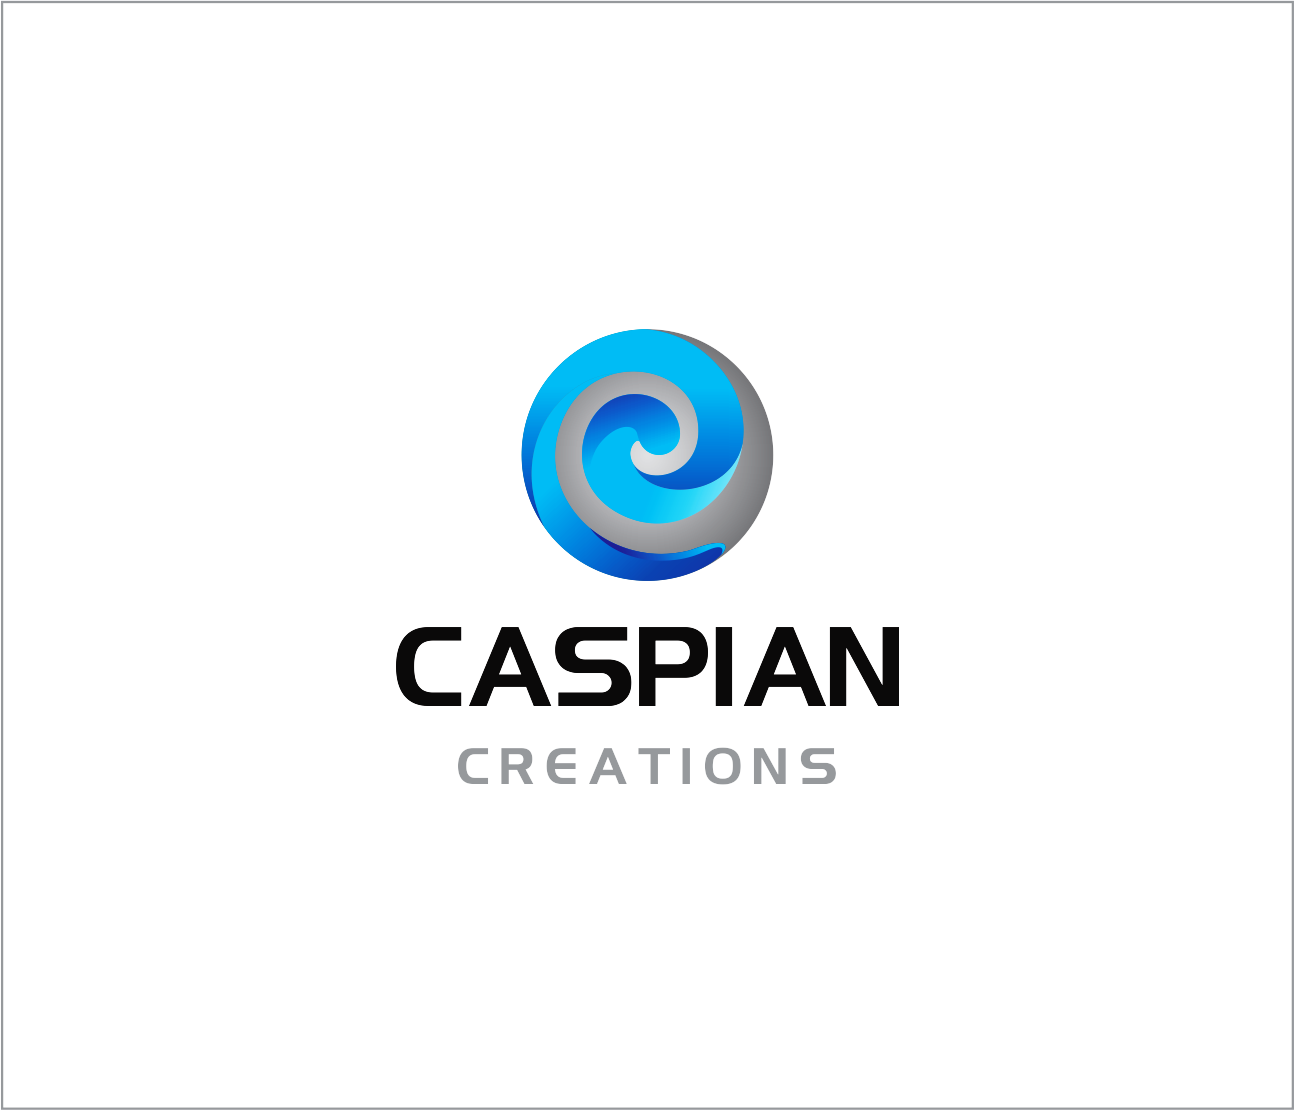 Logo Design by Armada Jamaluddin - Entry No. 23 in the Logo Design Contest Creative Logo Design for Caspian Creations.